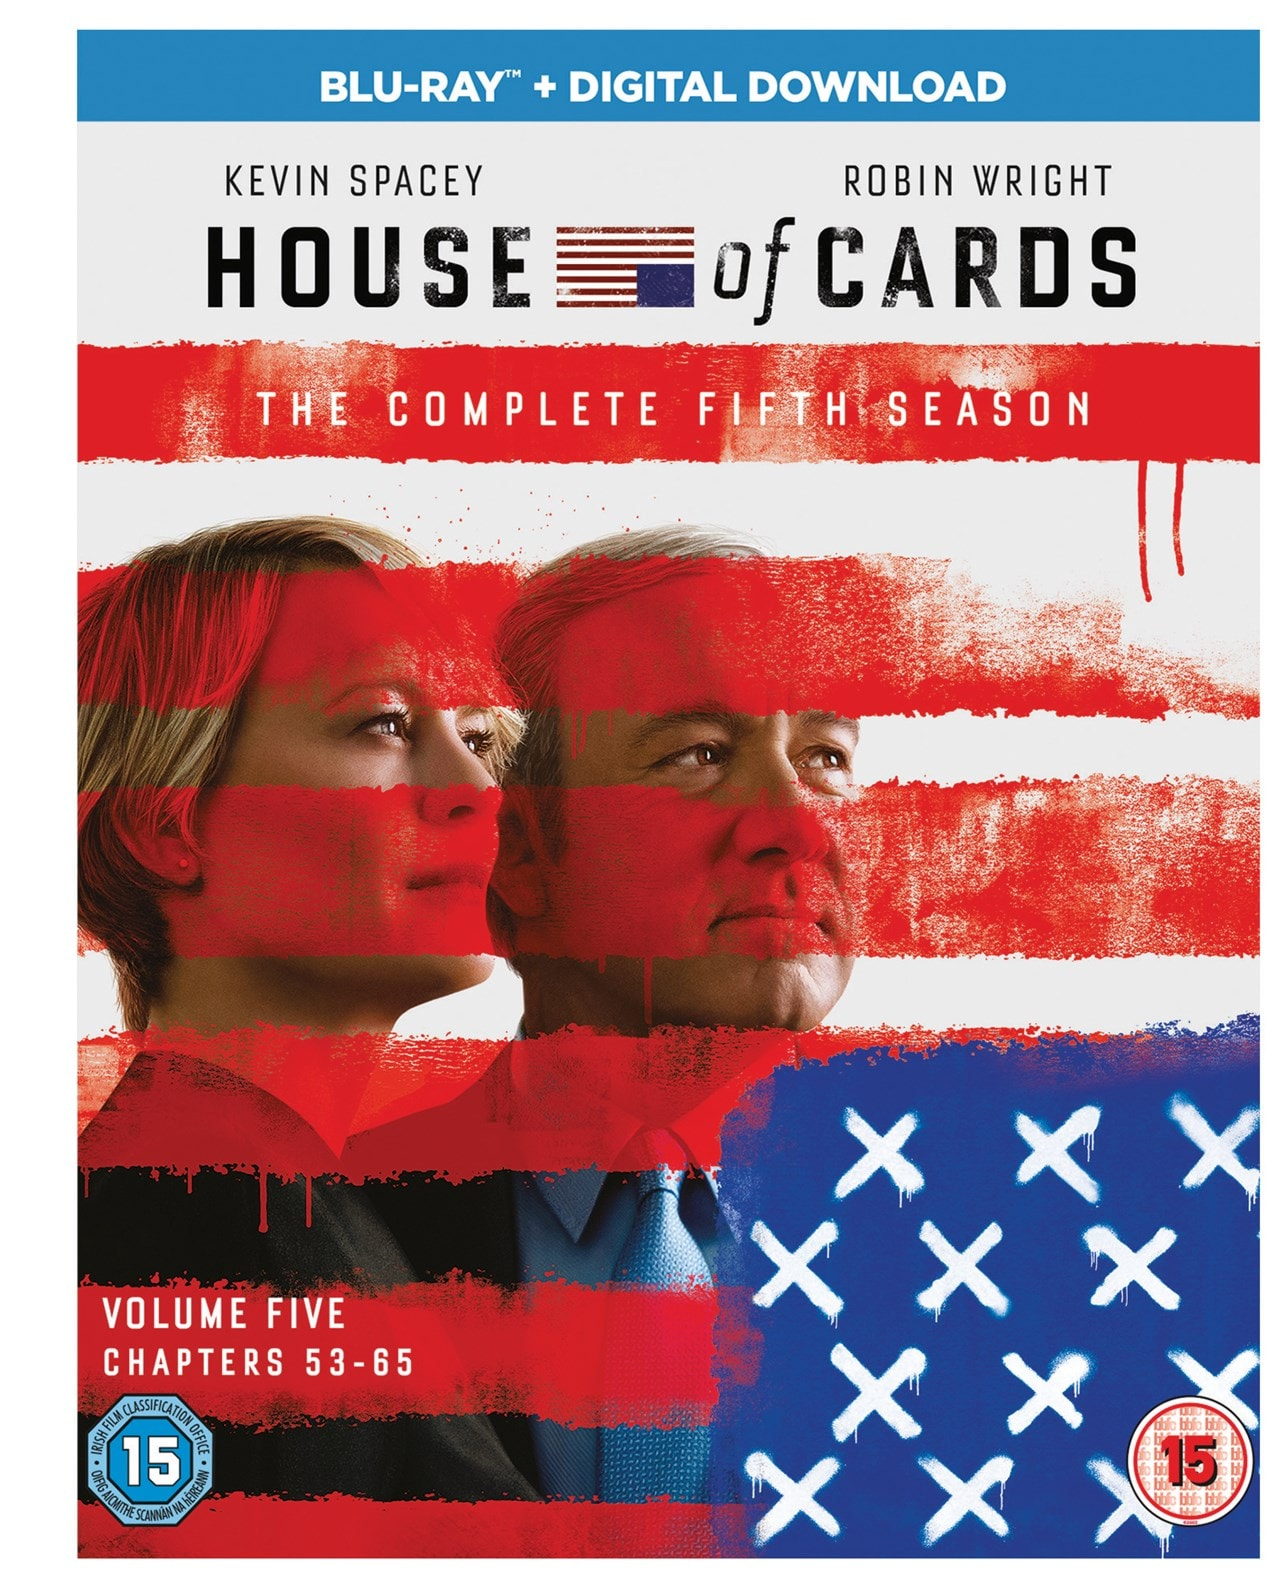 House Of Cards The Complete Fifth Season Blu Ray Box Set Free Shipping Over 20 Hmv Store